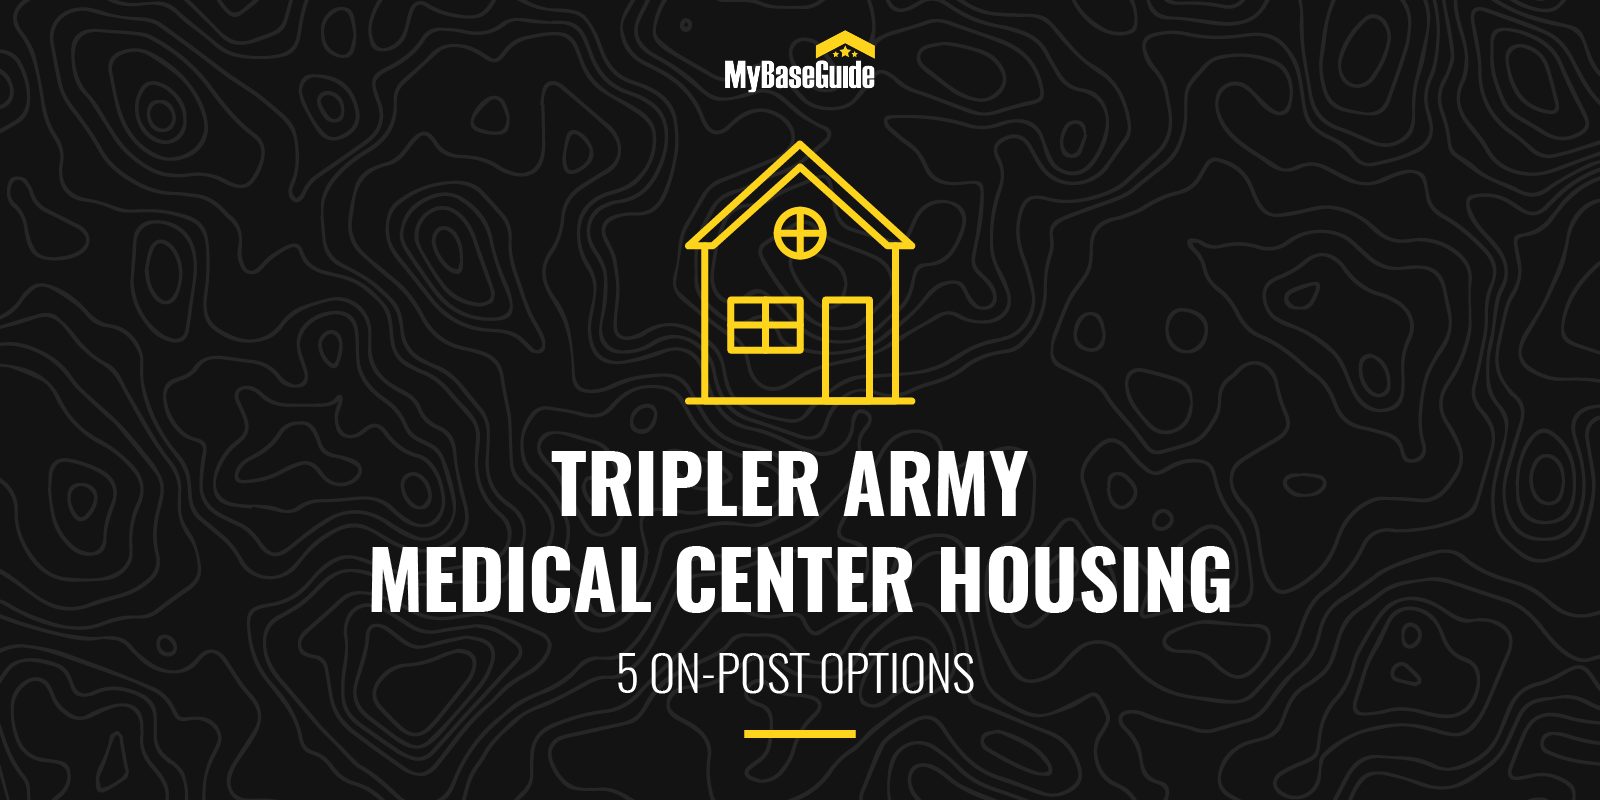 Tripler Army Medical Center Housing: 5 On-Post Options